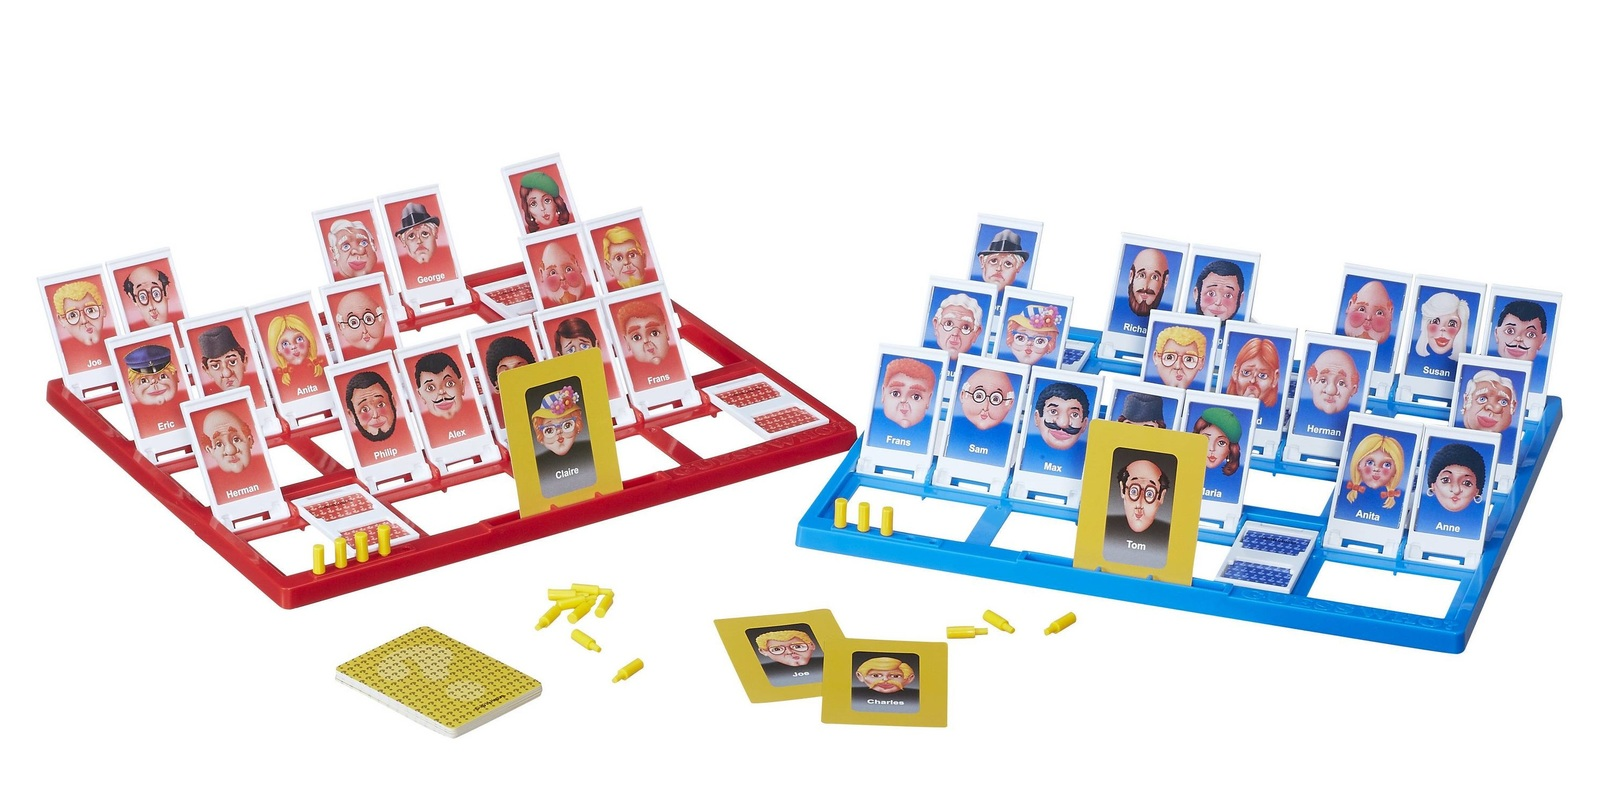 Guess Who? - 1988 Edition Game image